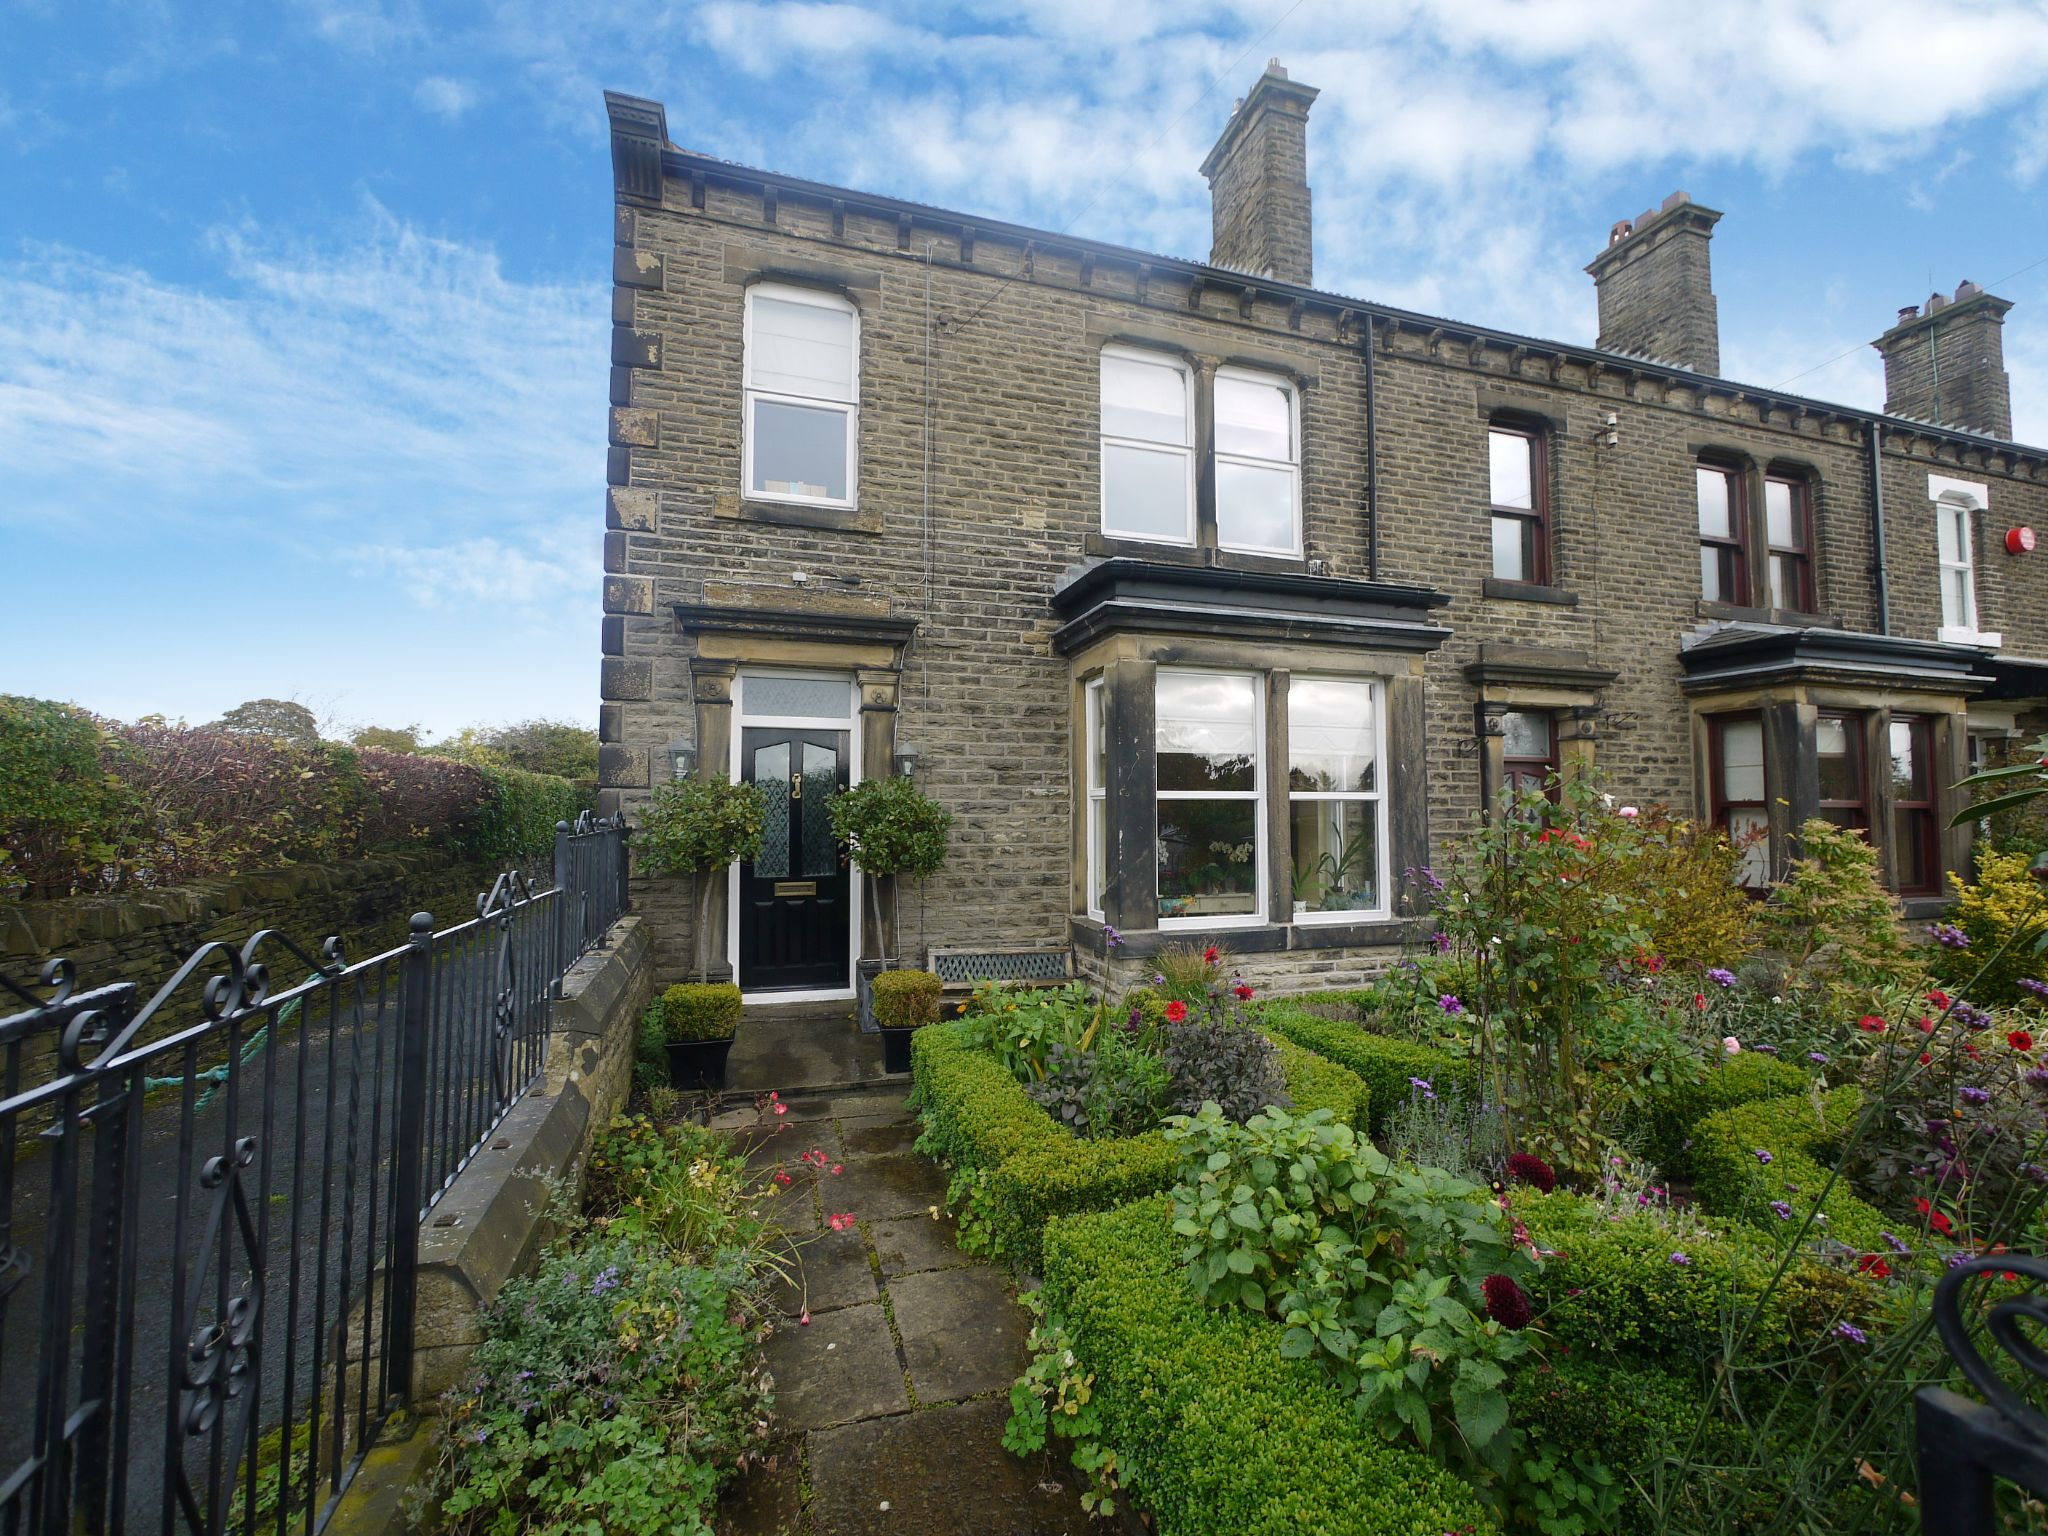 4 bedroom end terraced house SSTC in Halifax - Photograph 1.